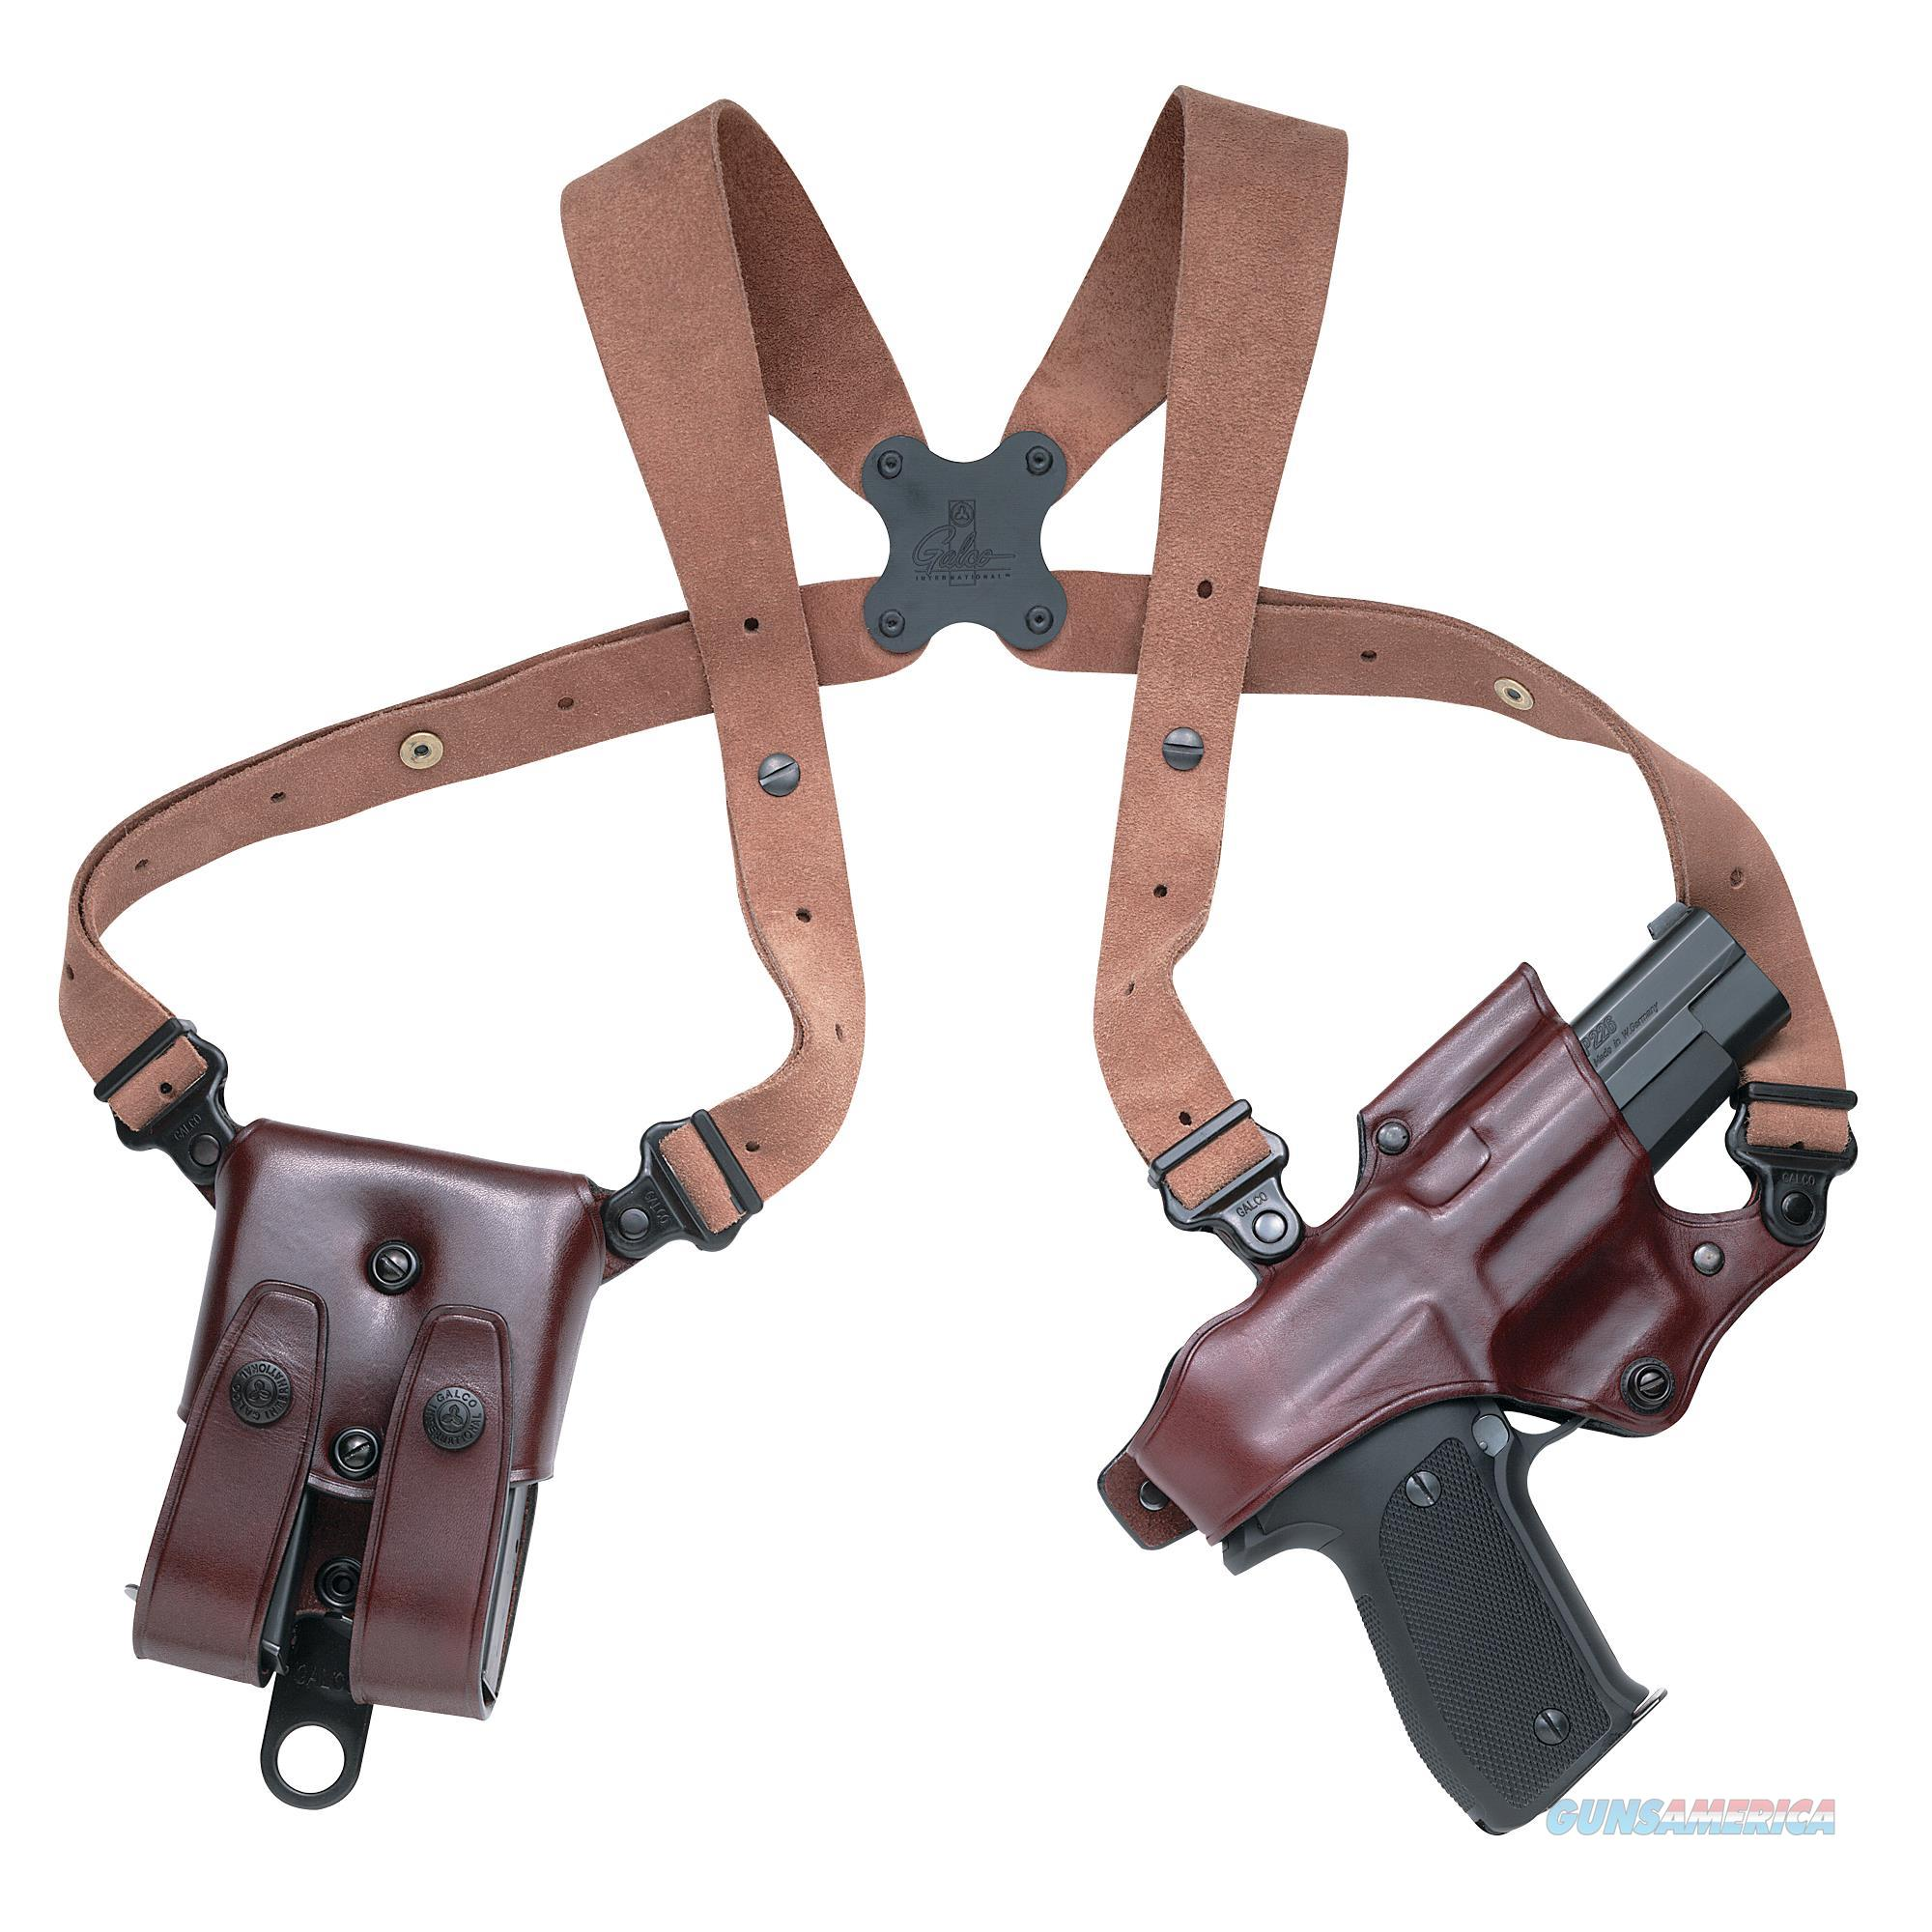 Galco Jr202h Jackass 202H Adjustable Havana Brown Leather W/ Suede Harness JR202H  Non-Guns > Holsters and Gunleather > Other